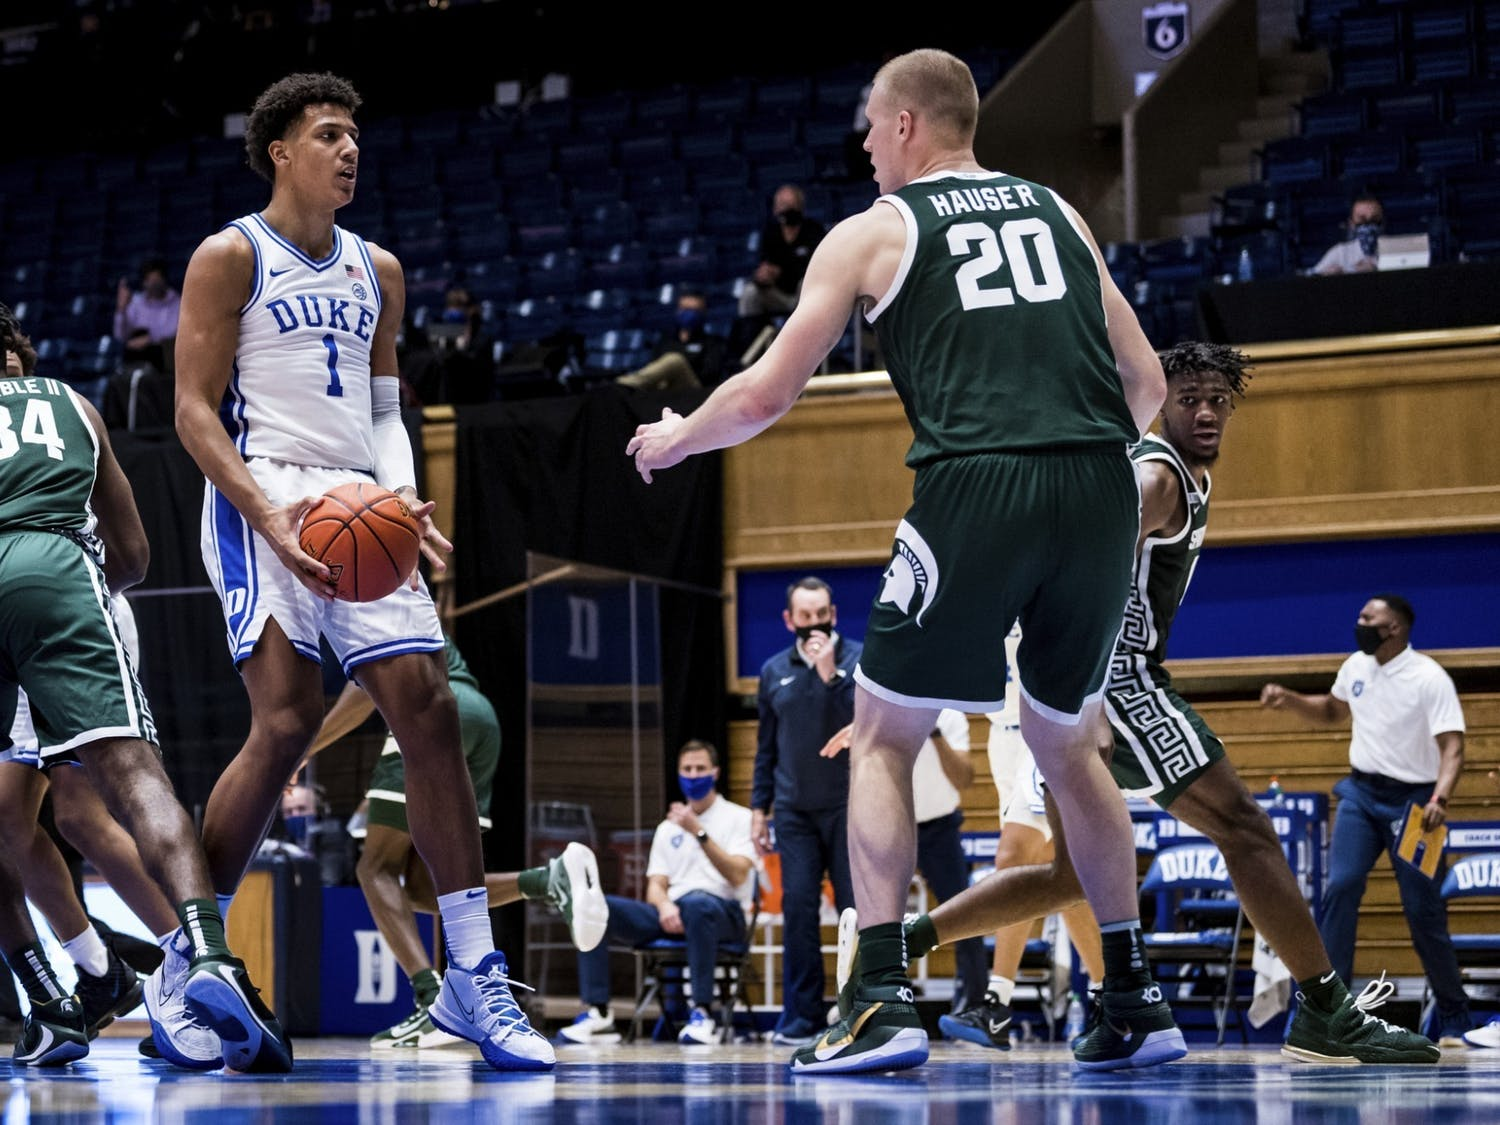 A big storyline for Duke's matchup with Georgia Tech is if Jalen Johnson and Matthew Hurt can play well together.